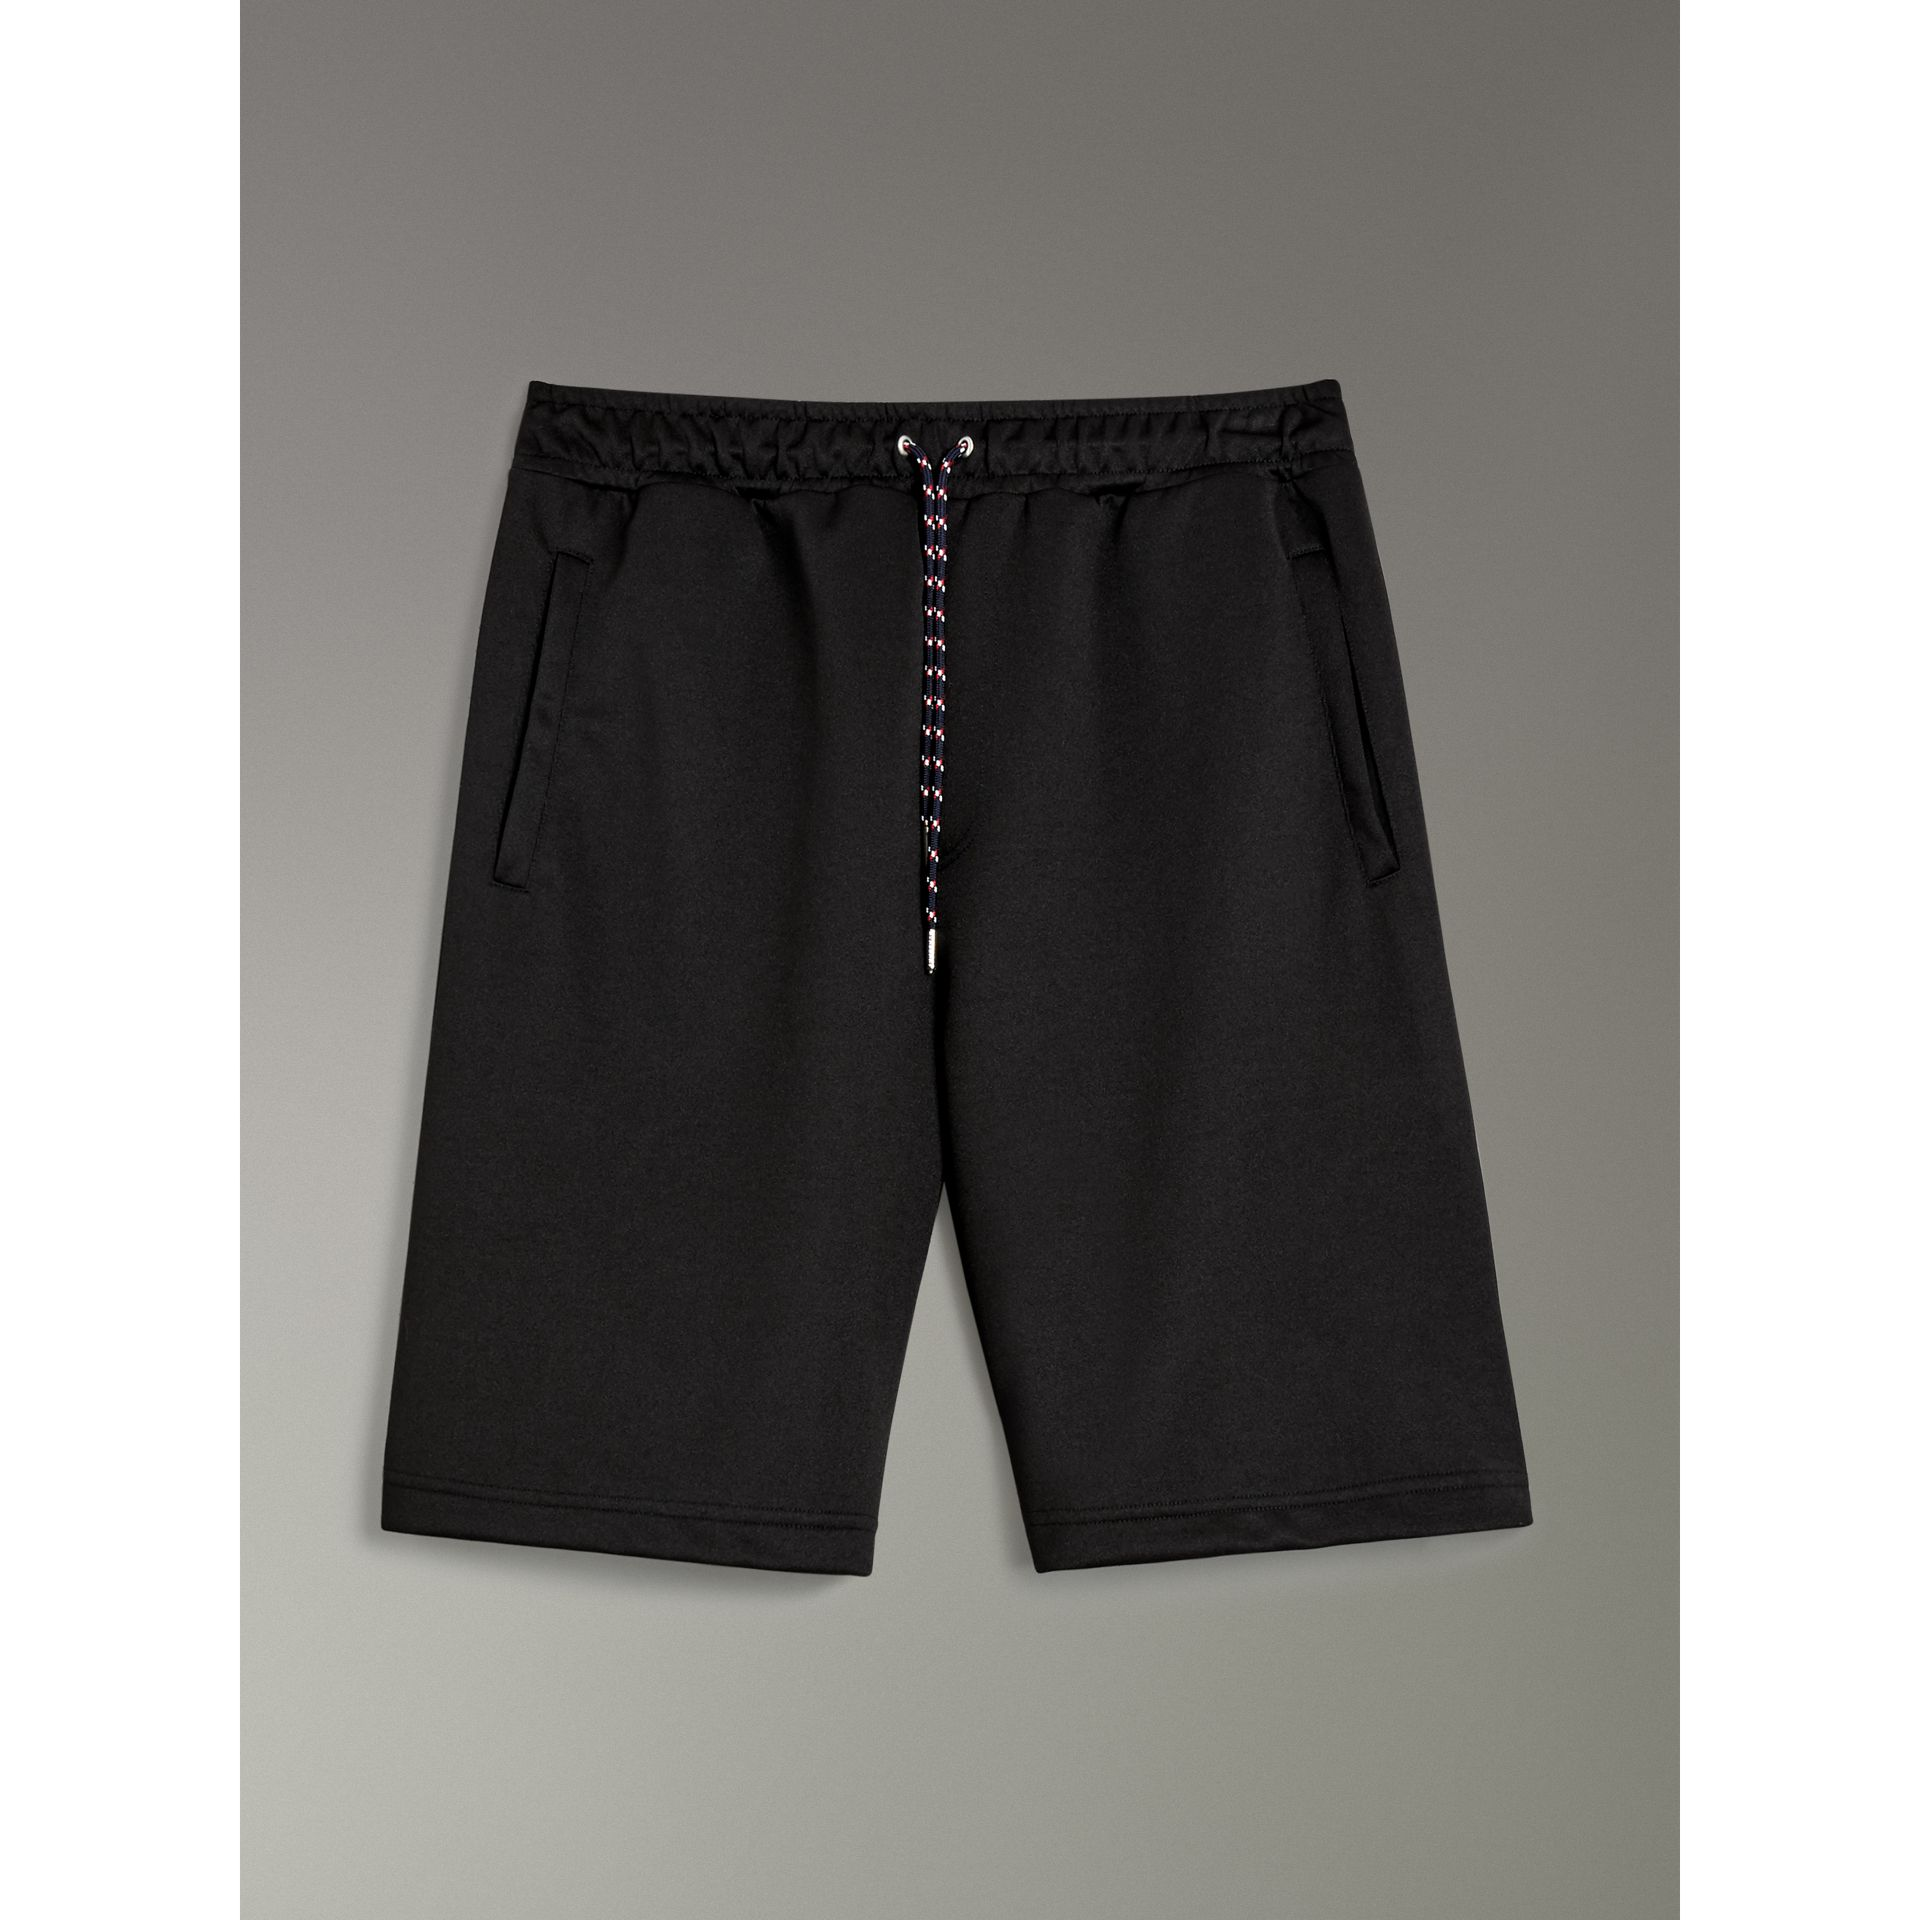 Cotton Blend Drawcord Shorts in Black - Men | Burberry United Kingdom - gallery image 3